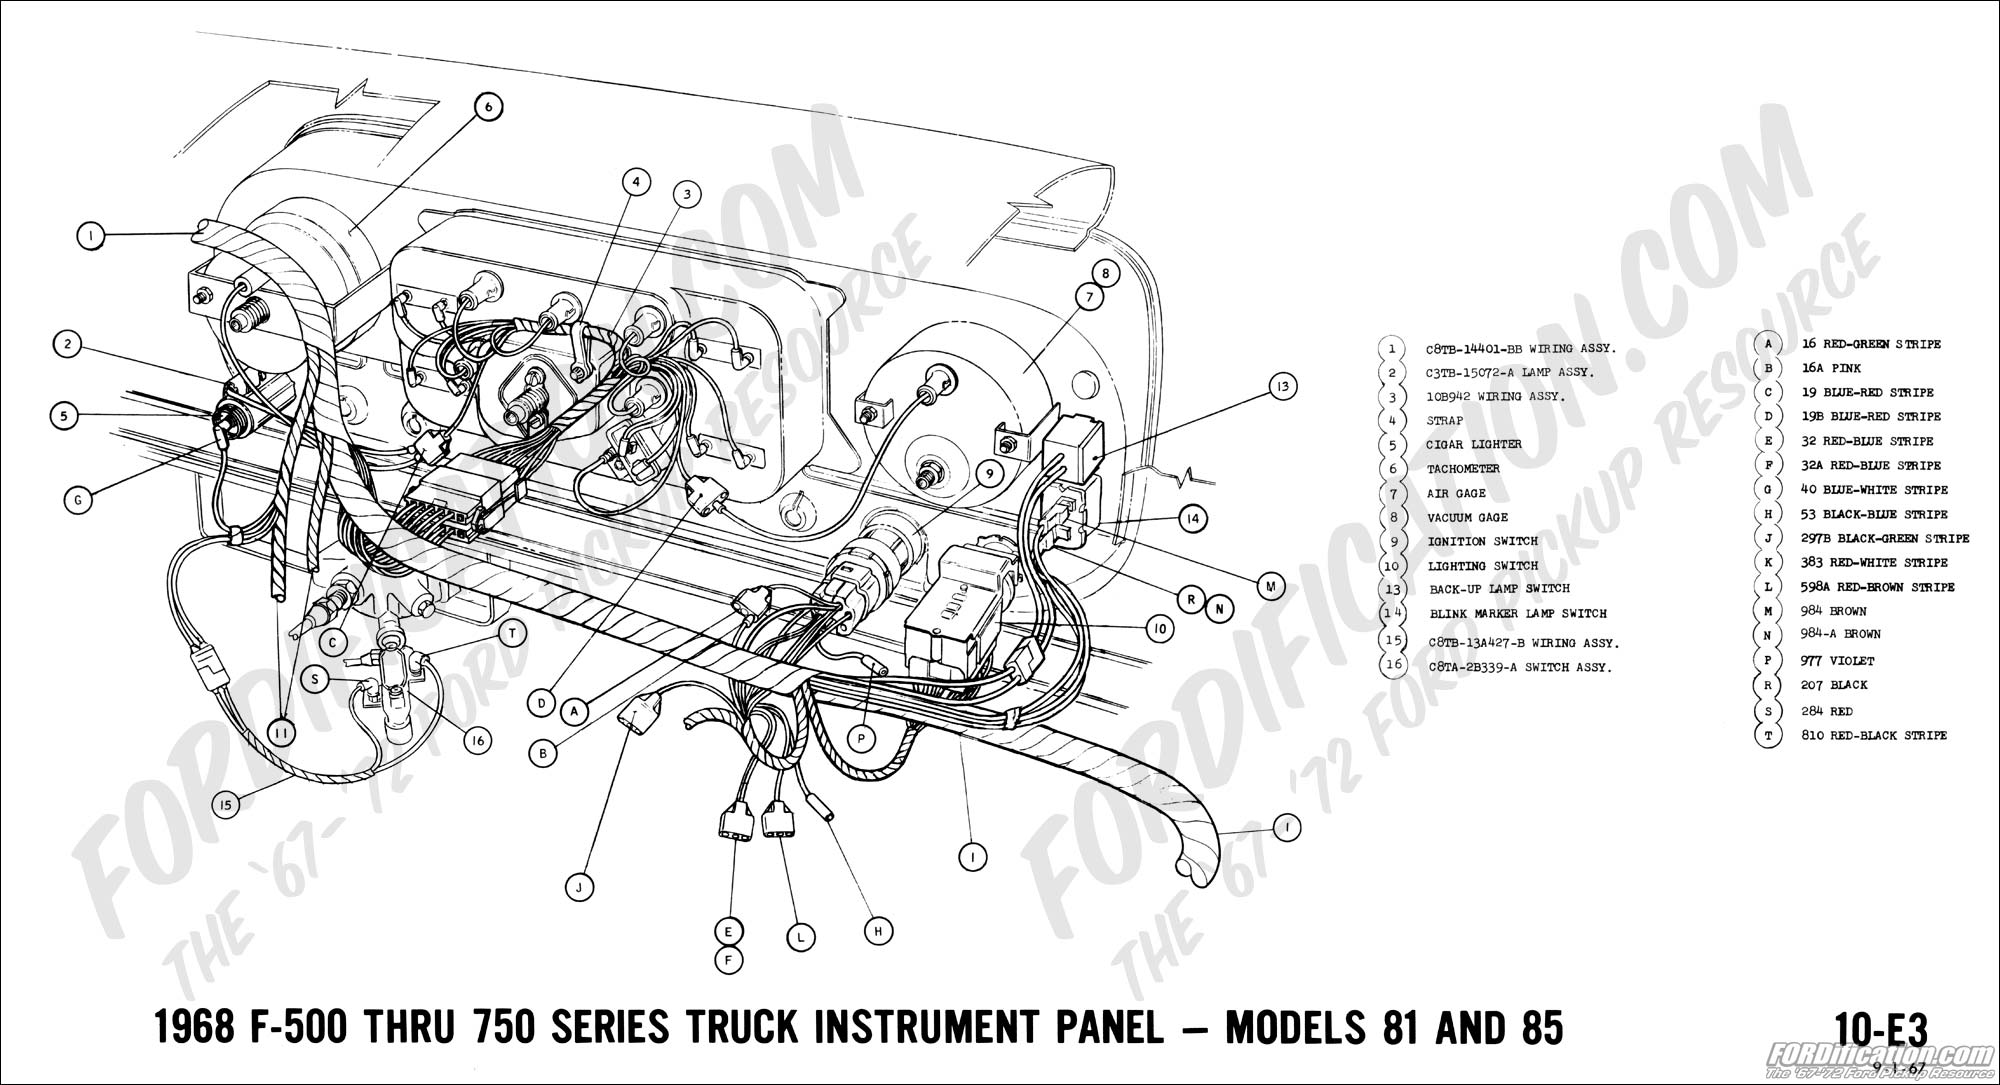 2000 ford windstar wiring diagram manual 2000 discover your 1968 f600 wiring diagram